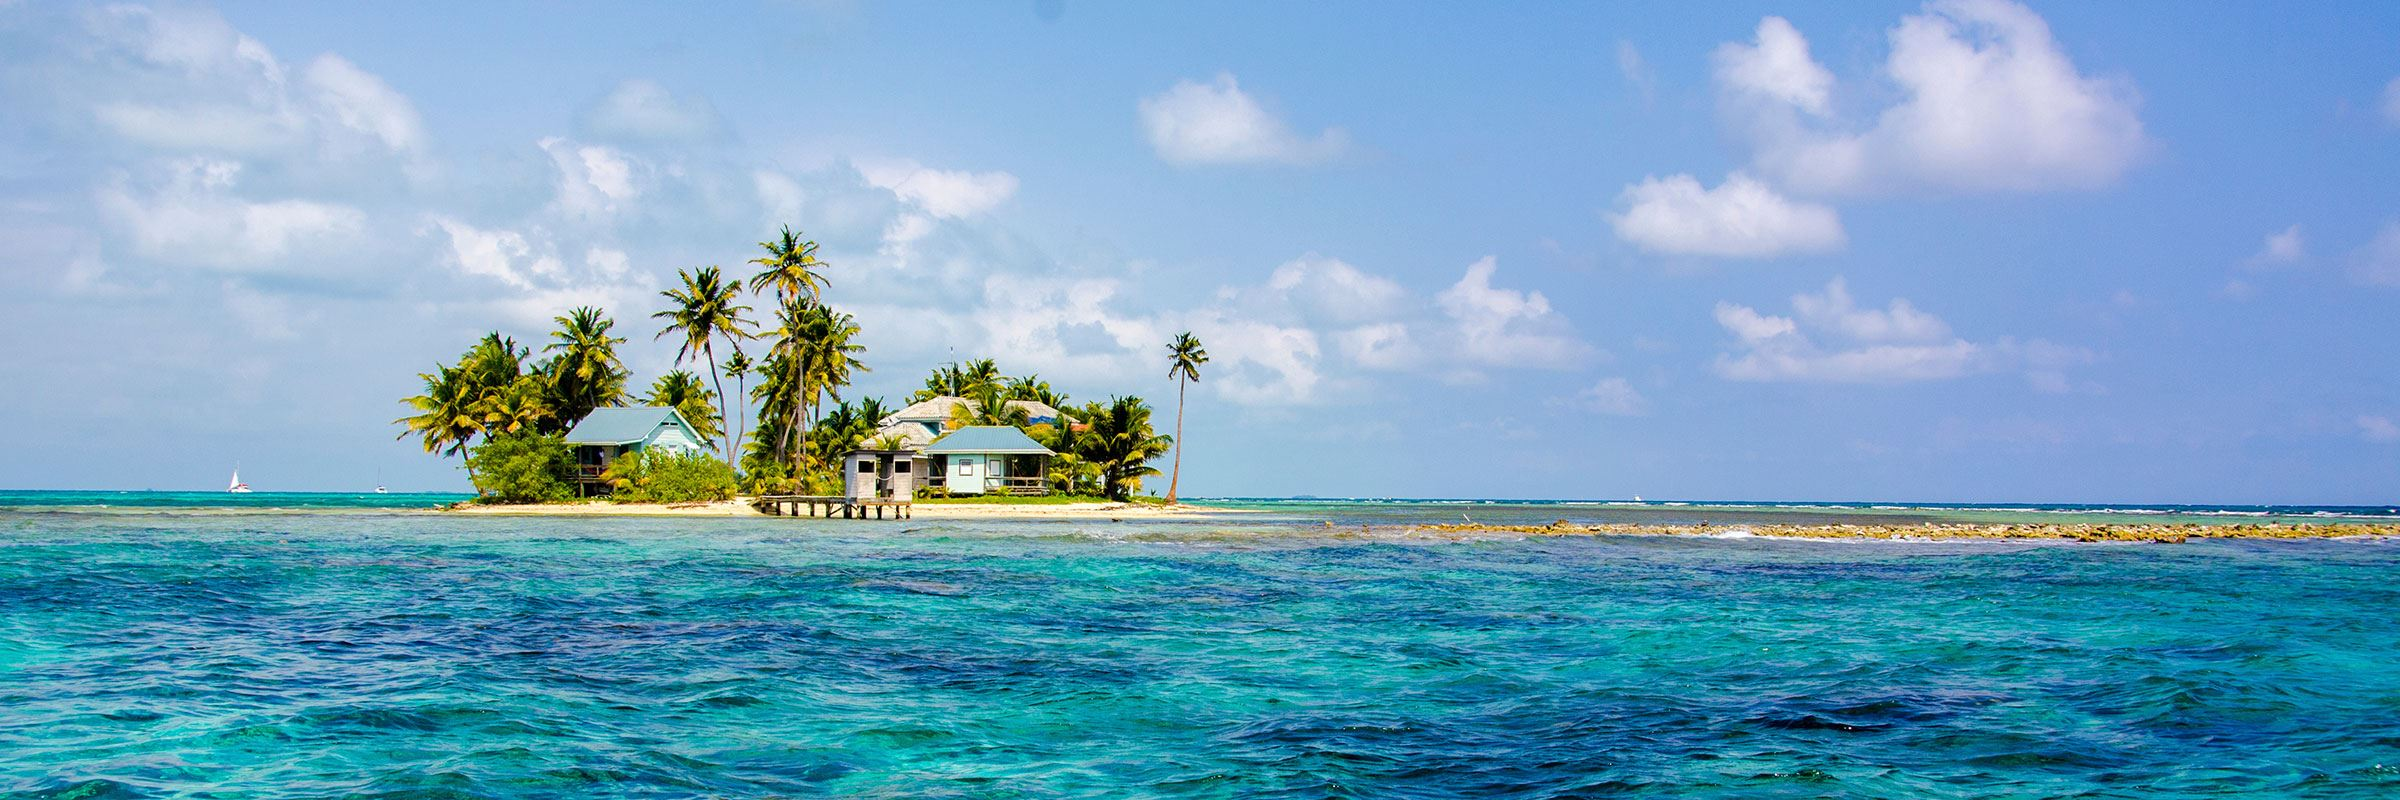 Visit the Cayes, Belize